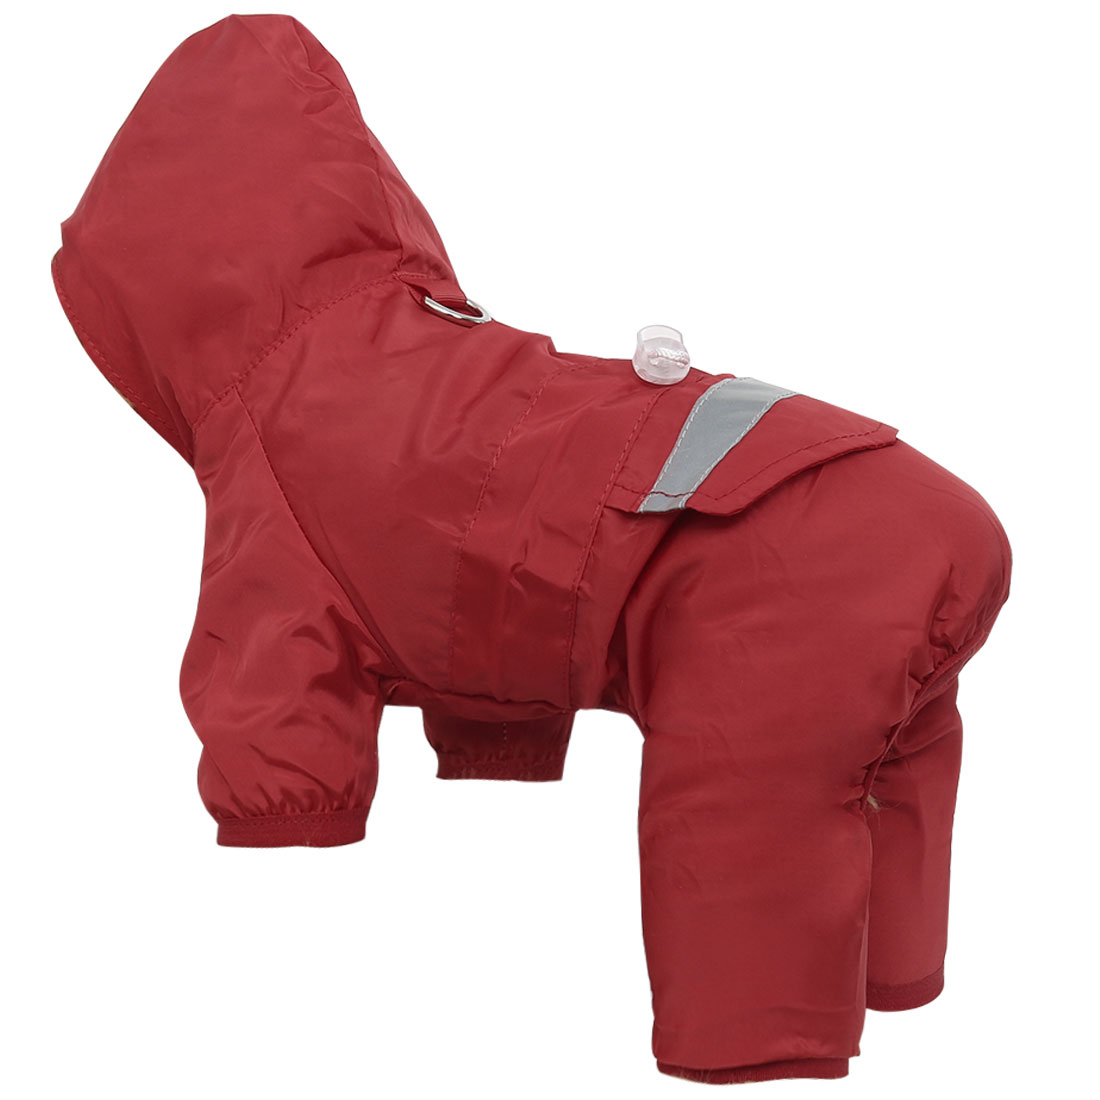 Pet Dog Raincoat Jacket Clothes Polyester Puppy Water-resistant Rainwear, Red M